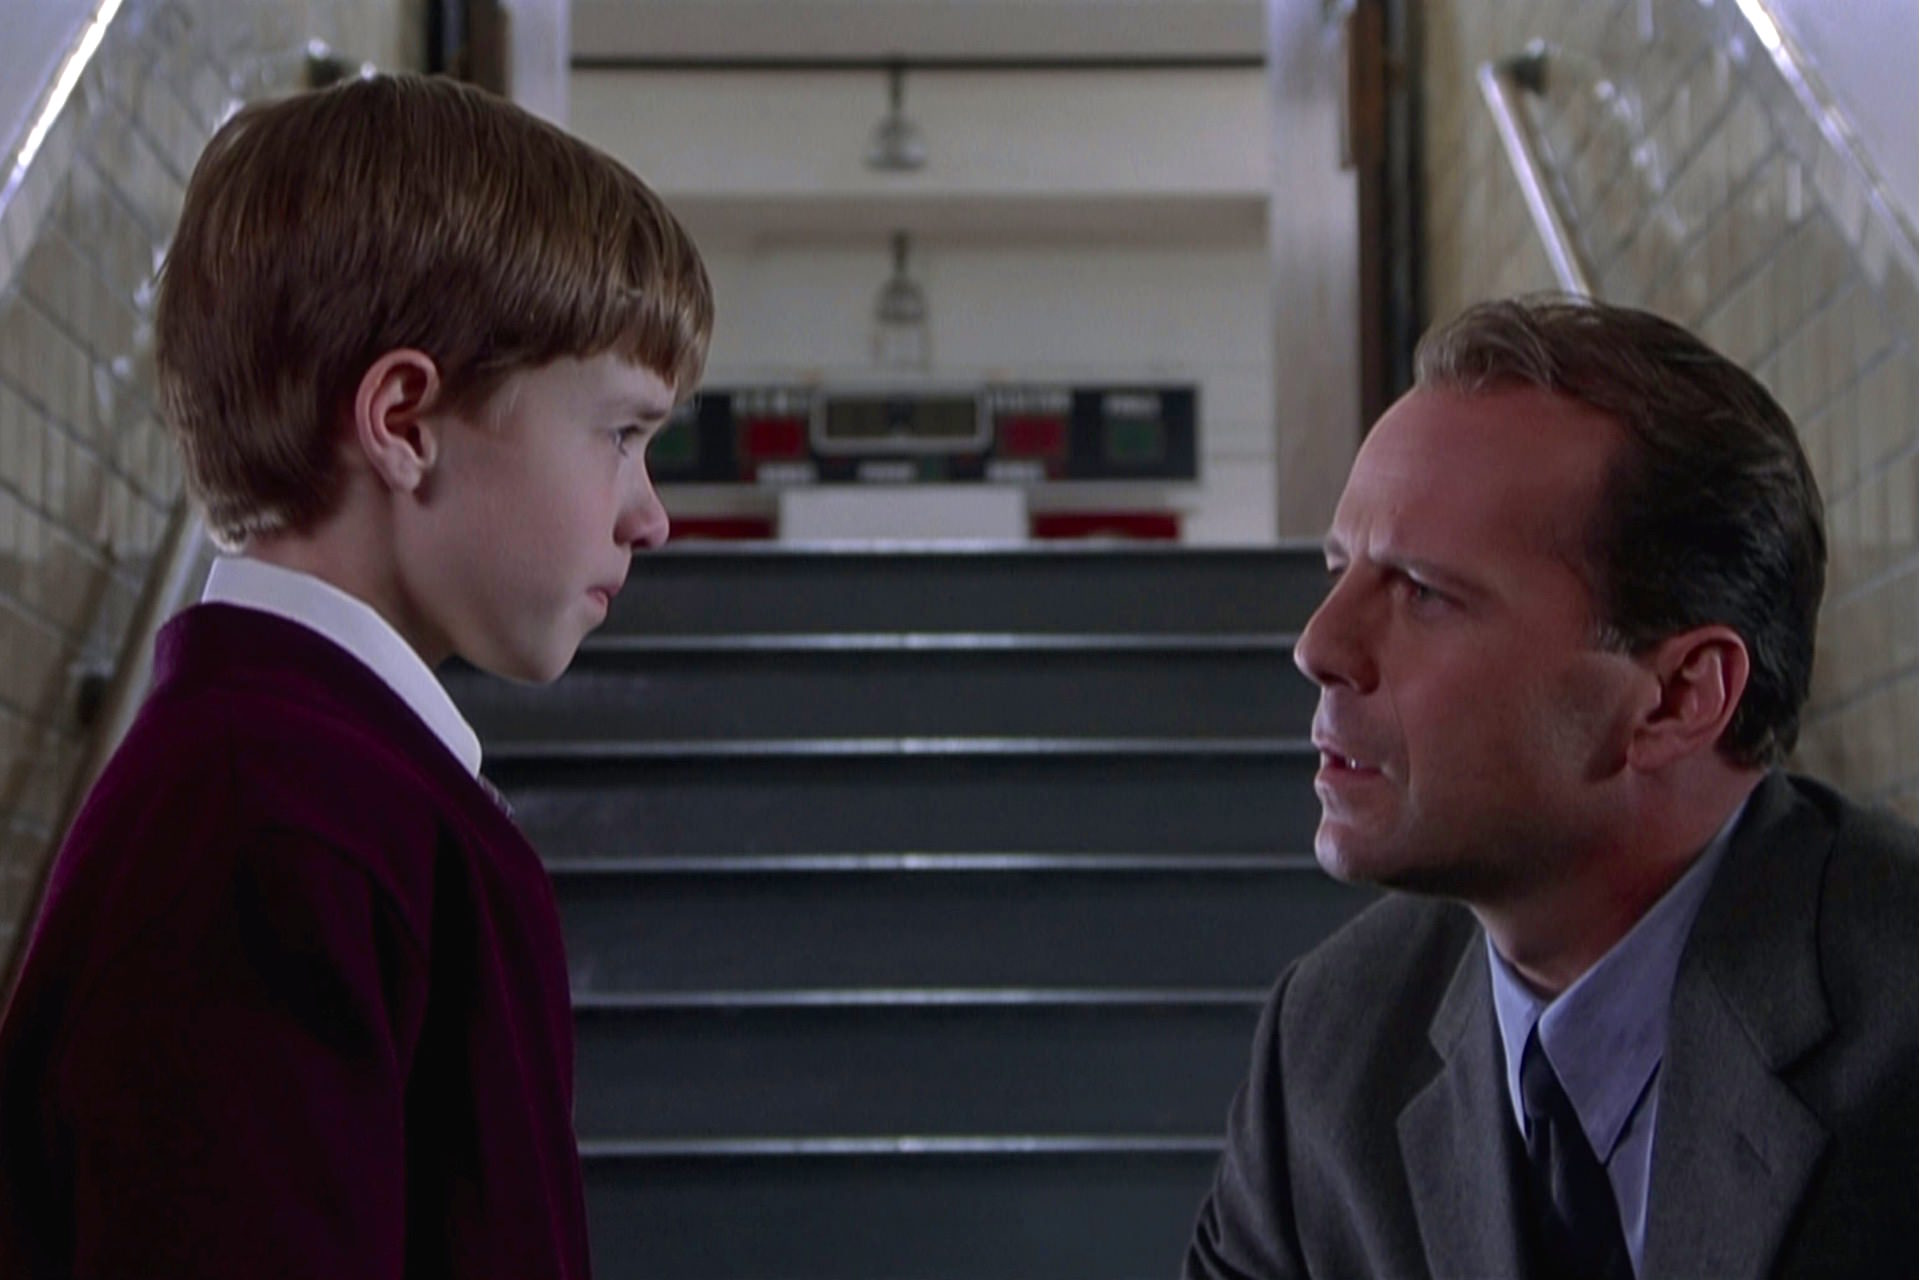 Sixieme sens haley joel osment bruce willis